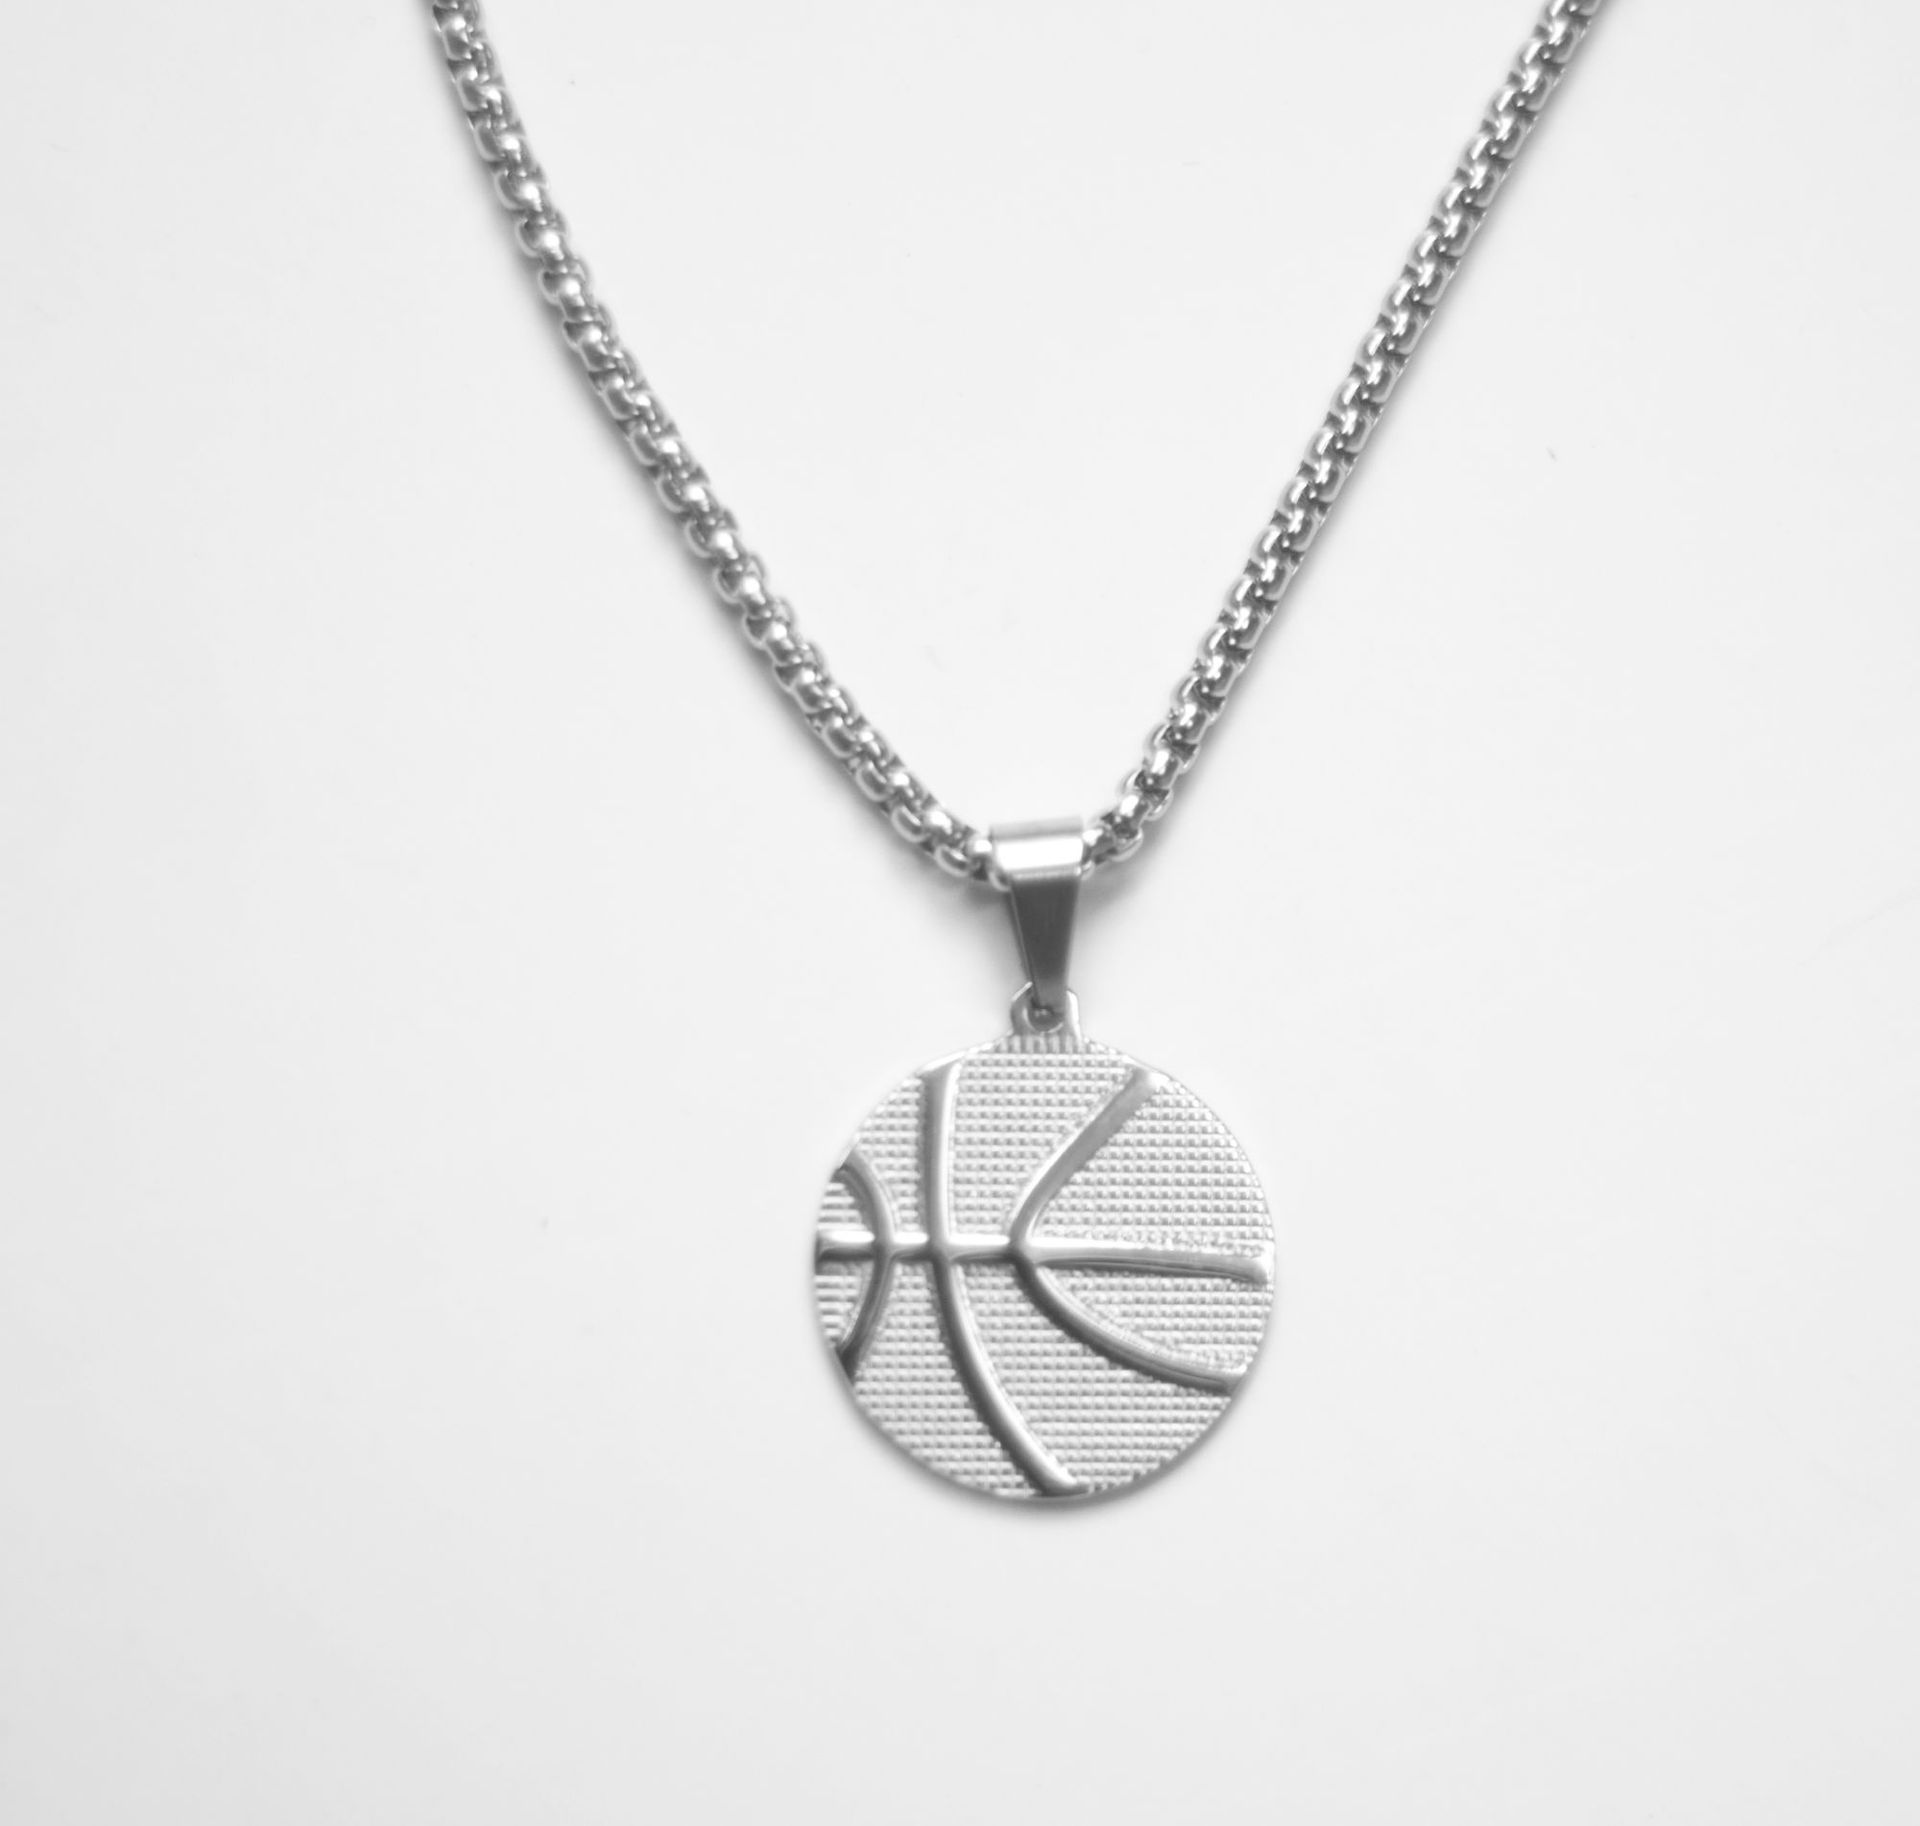 Cool Basketball Pendant Titanium Steel Necklace for Gifts to Boys